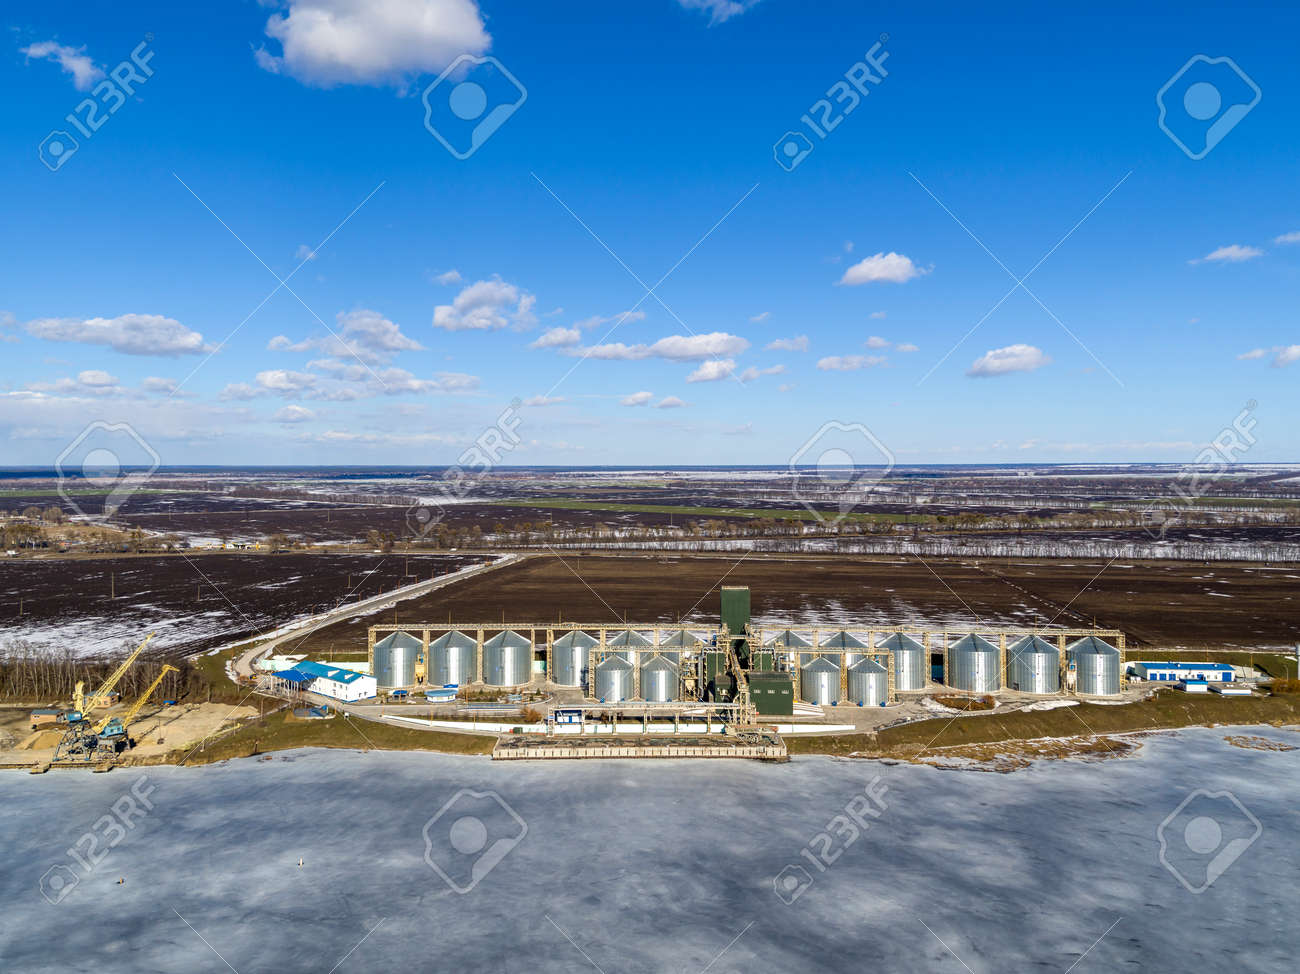 Agro-processing plant for processing and silos for drying cleaning and storage of agricultural products, flour, cereals and grain with beautiful clouds and frozen river in winter - 165561753